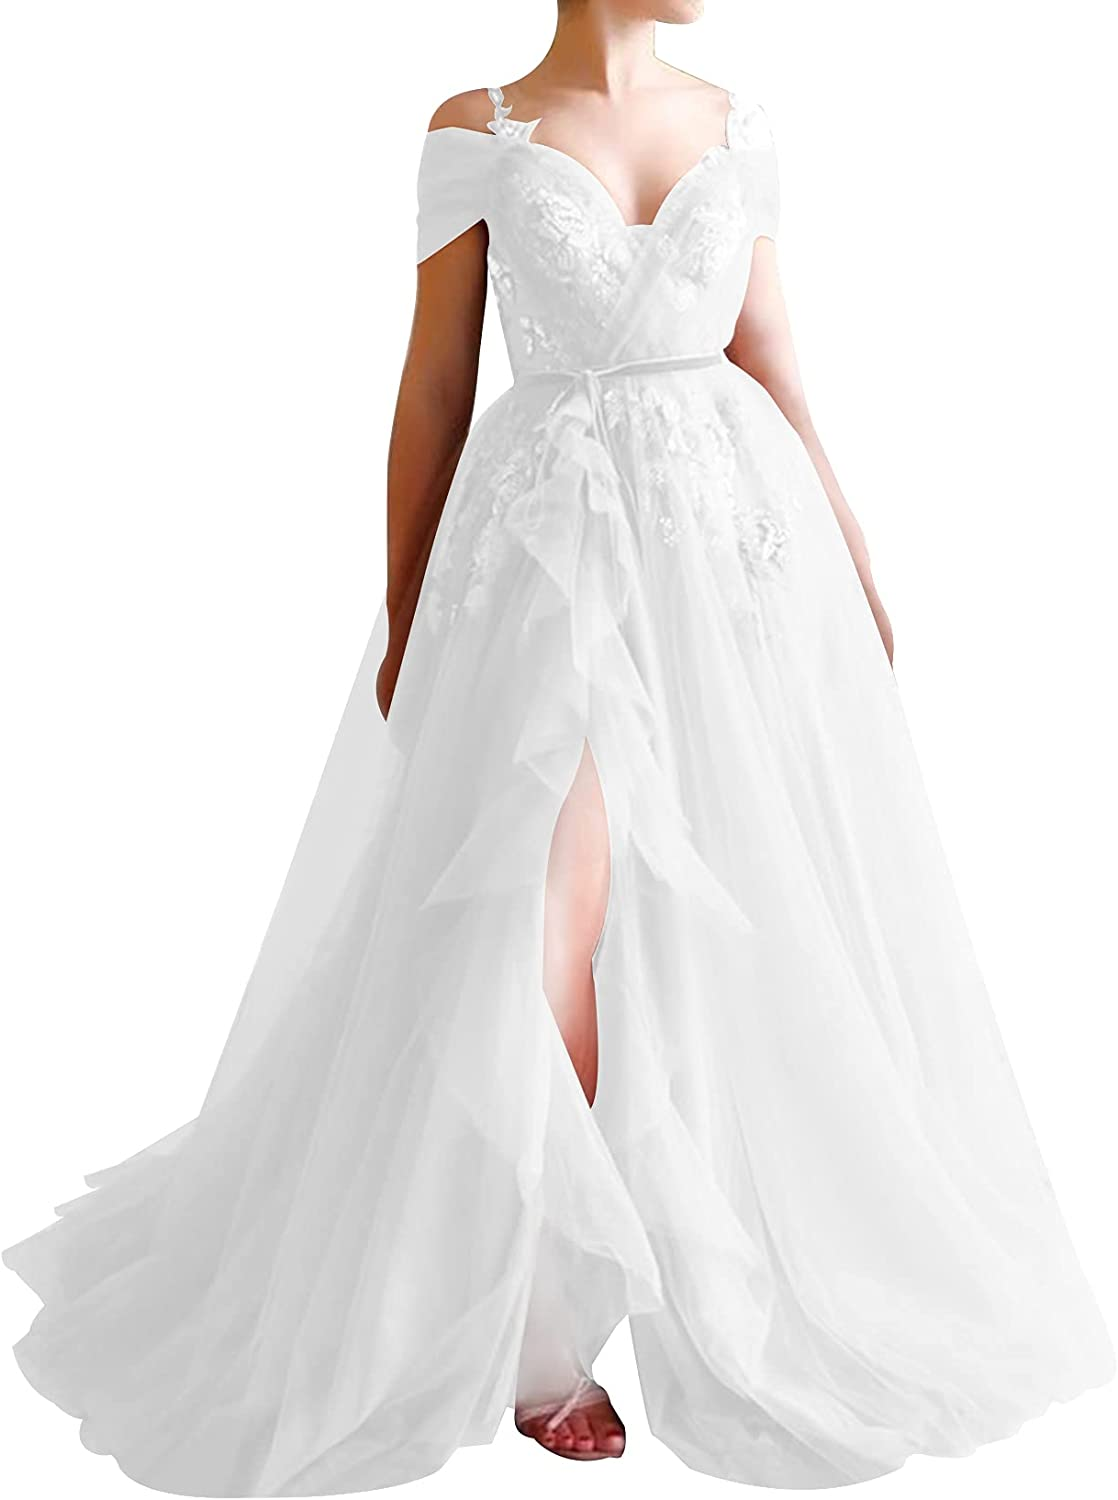 Wedding Dress Tulle Bridal Gowns V Neck Bride Dresses with Split Lace Wedding Gown